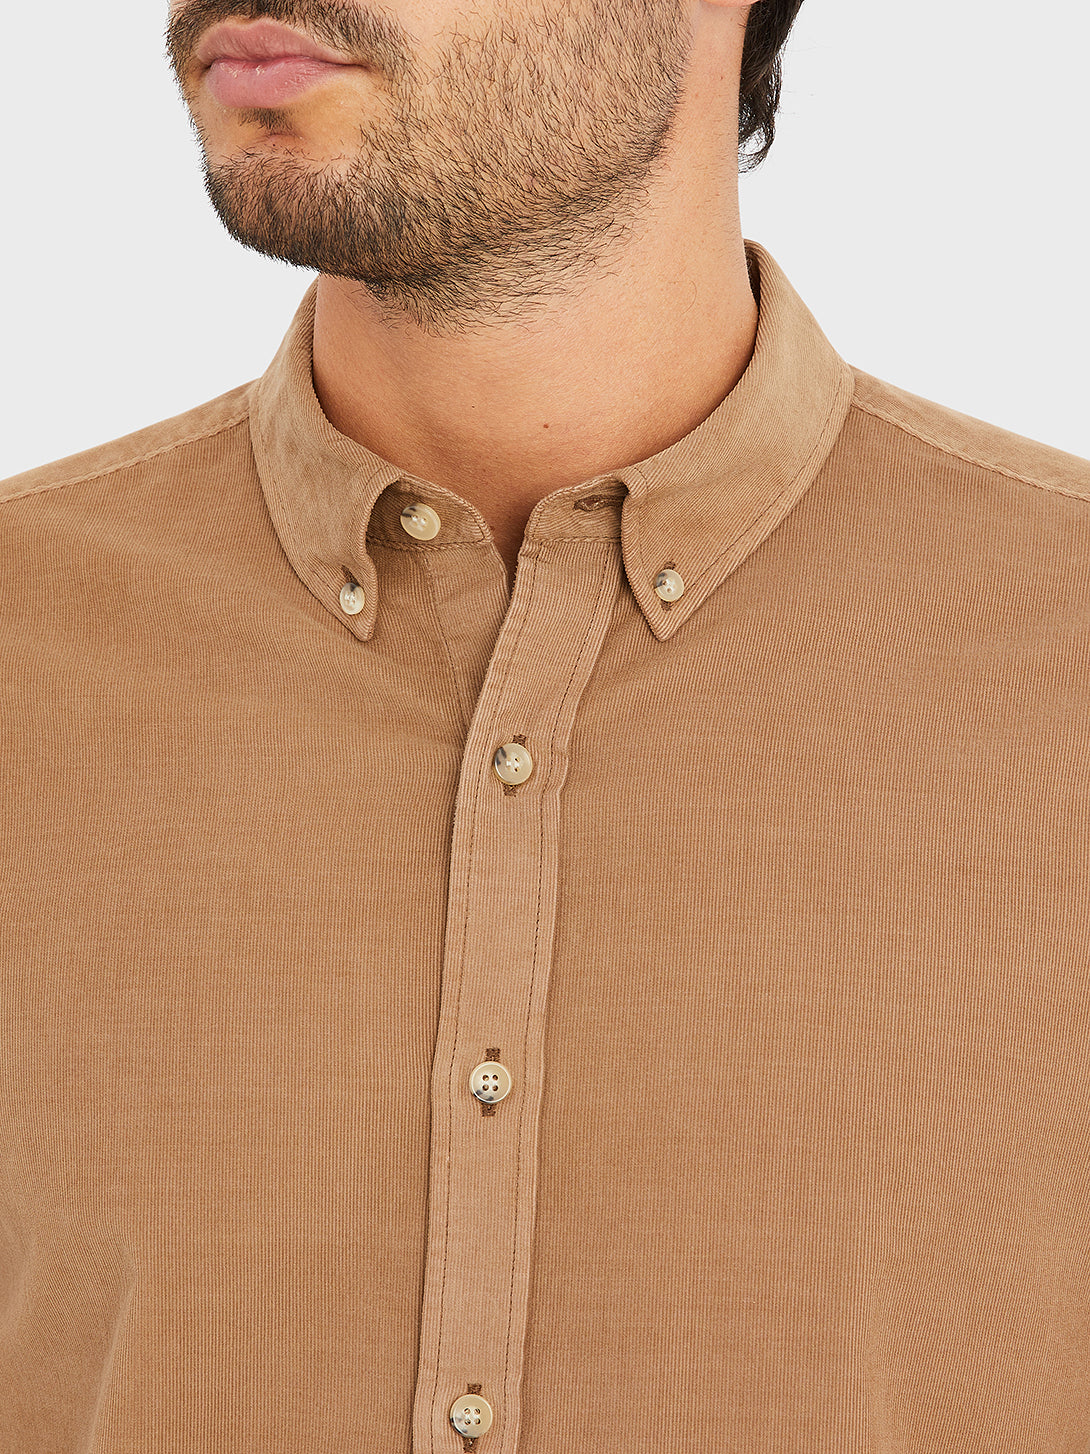 ONS Clothing Men's FULTON CORD SHIRT in COFFEE